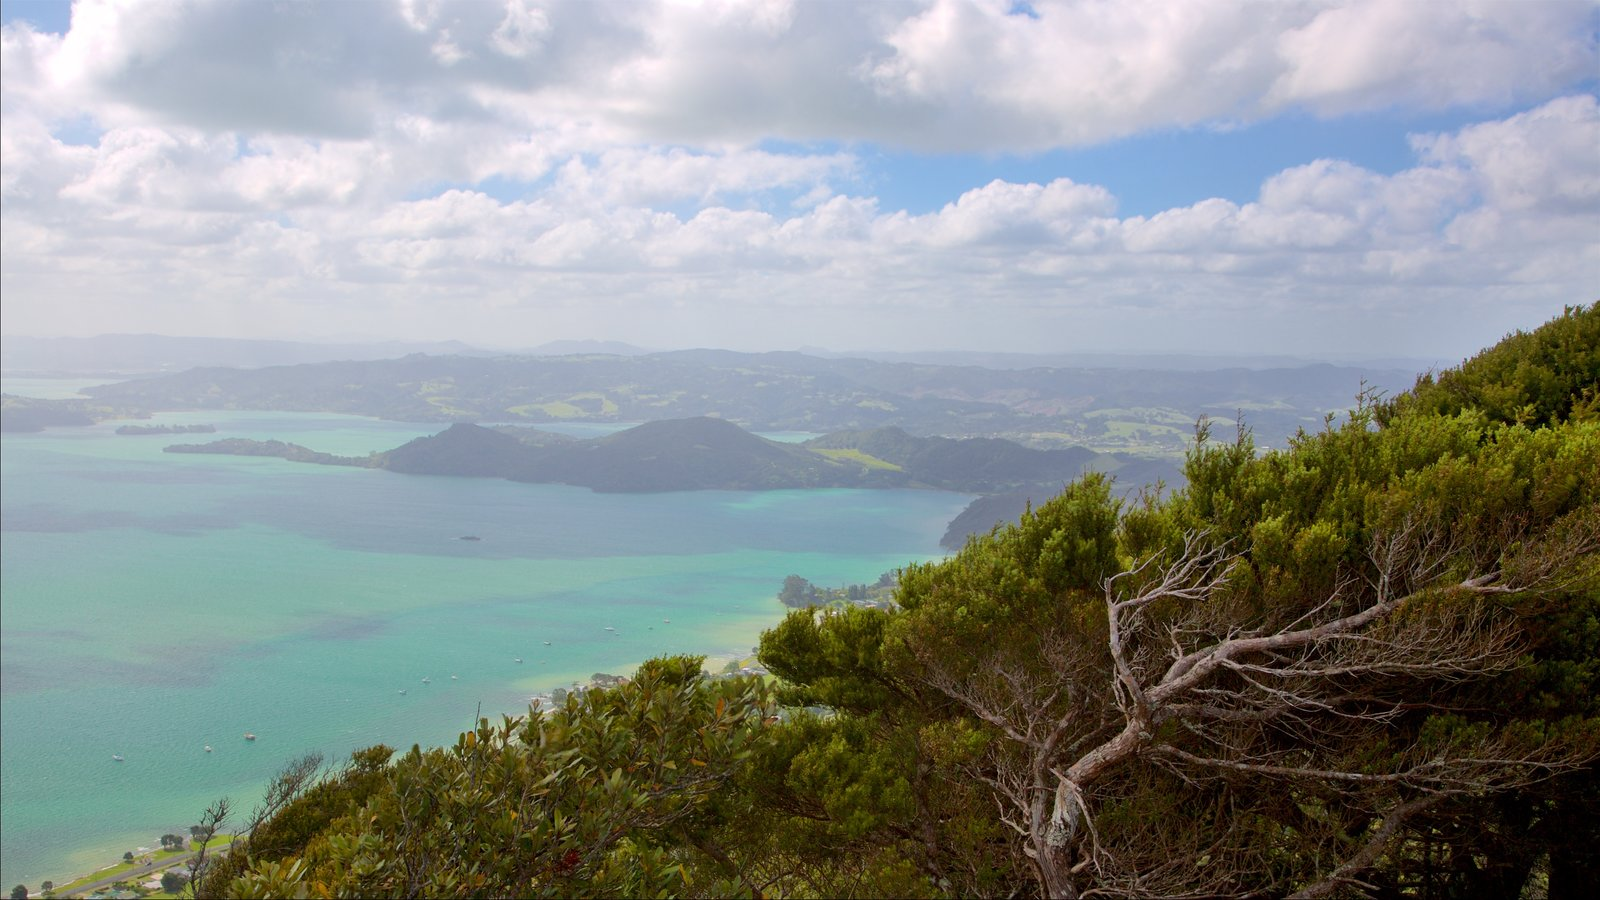 Mount Manaia featuring island views and a bay or harbor